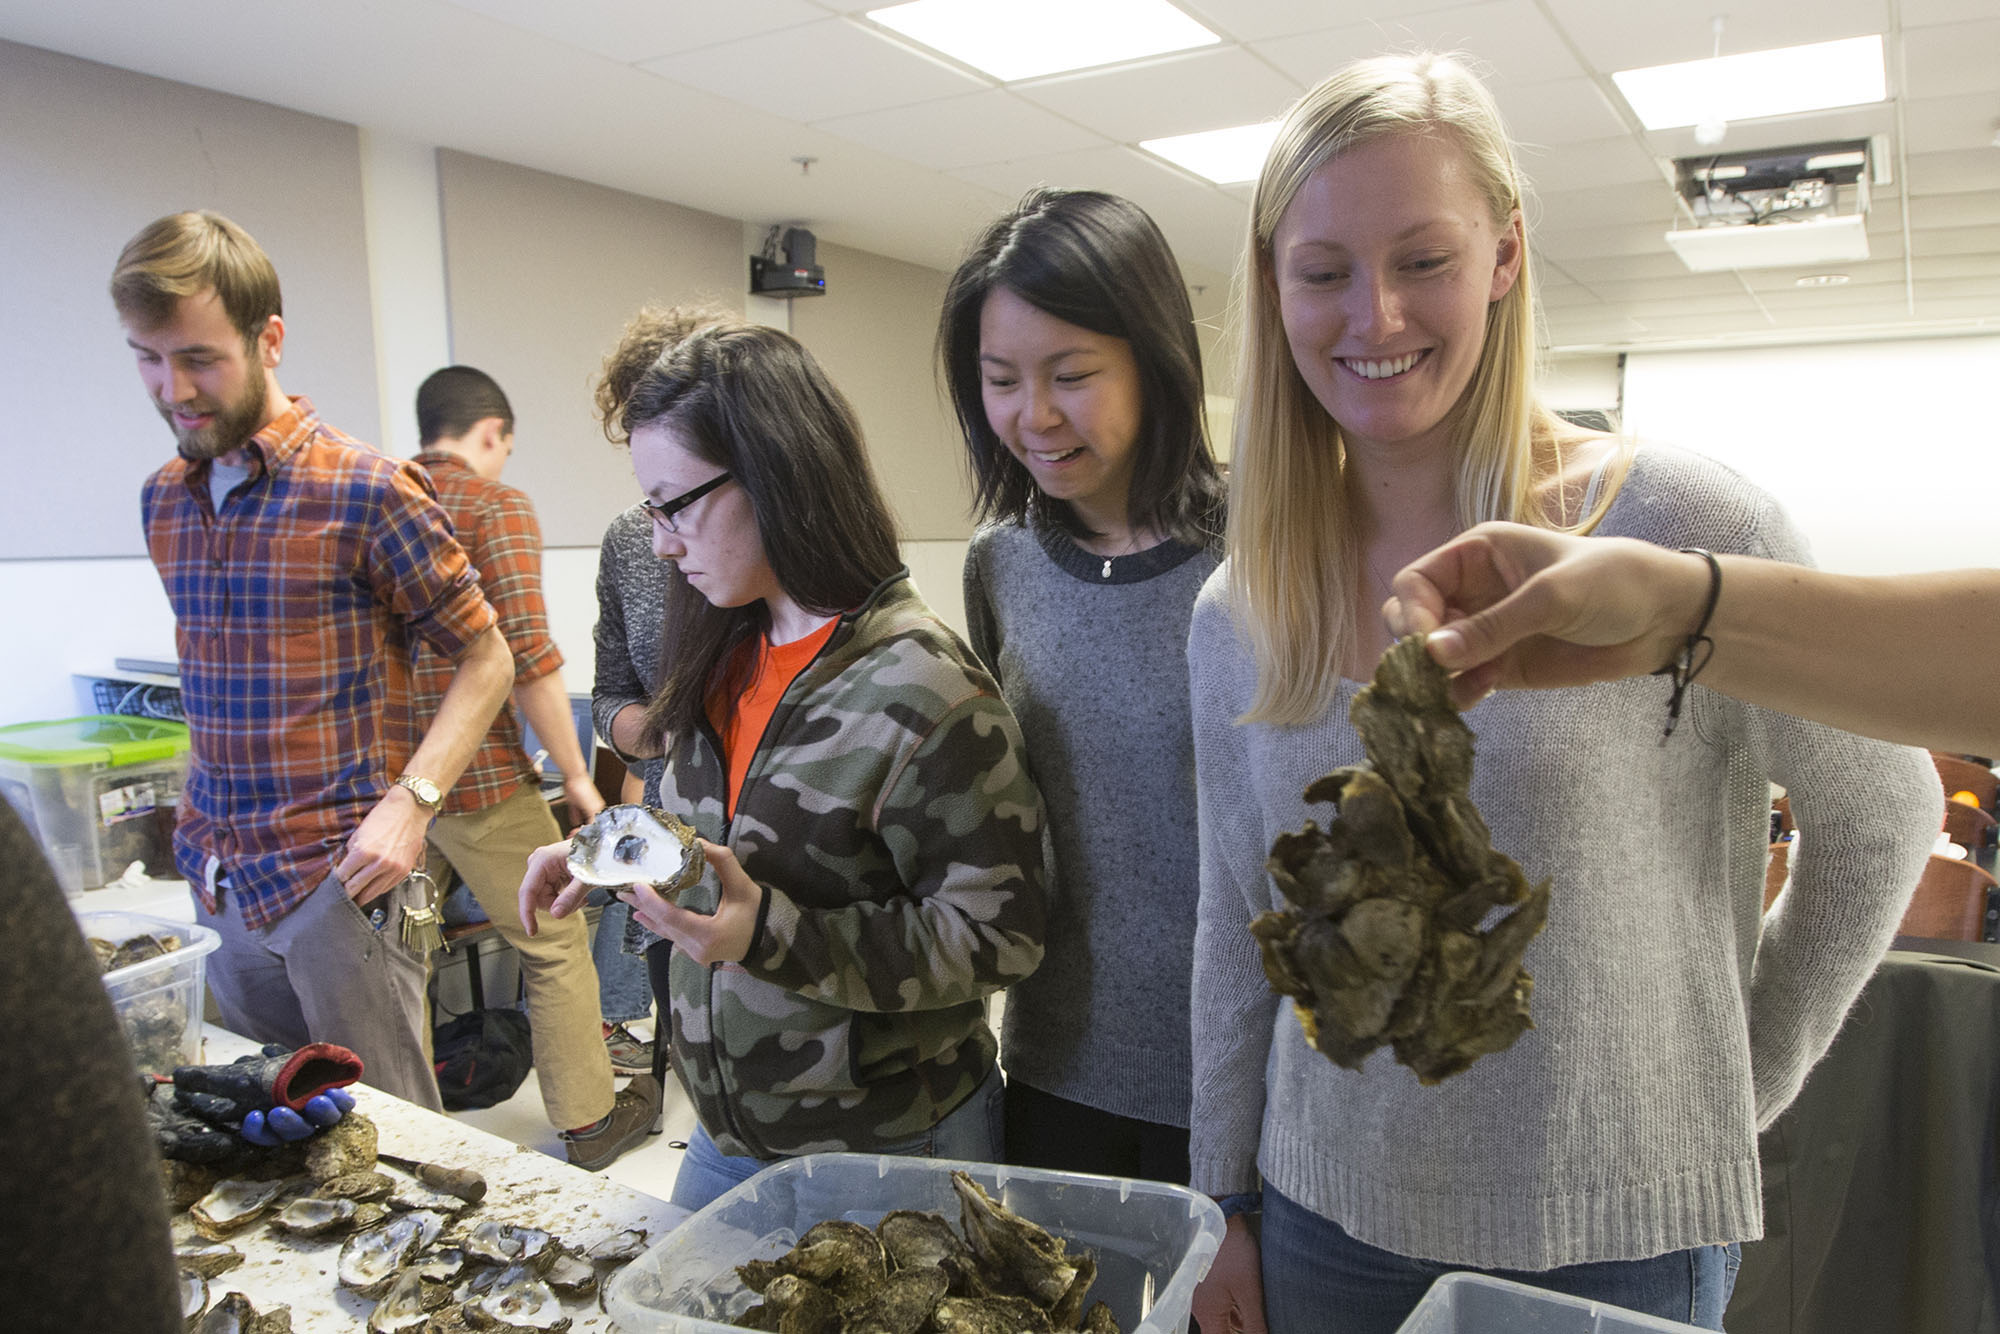 Students Nathan Rose, Kristen Eppard, Abigail Chan and Mary Collins take a look at some aquacultured oysters, brought to Stephen Macko's fisheries class.